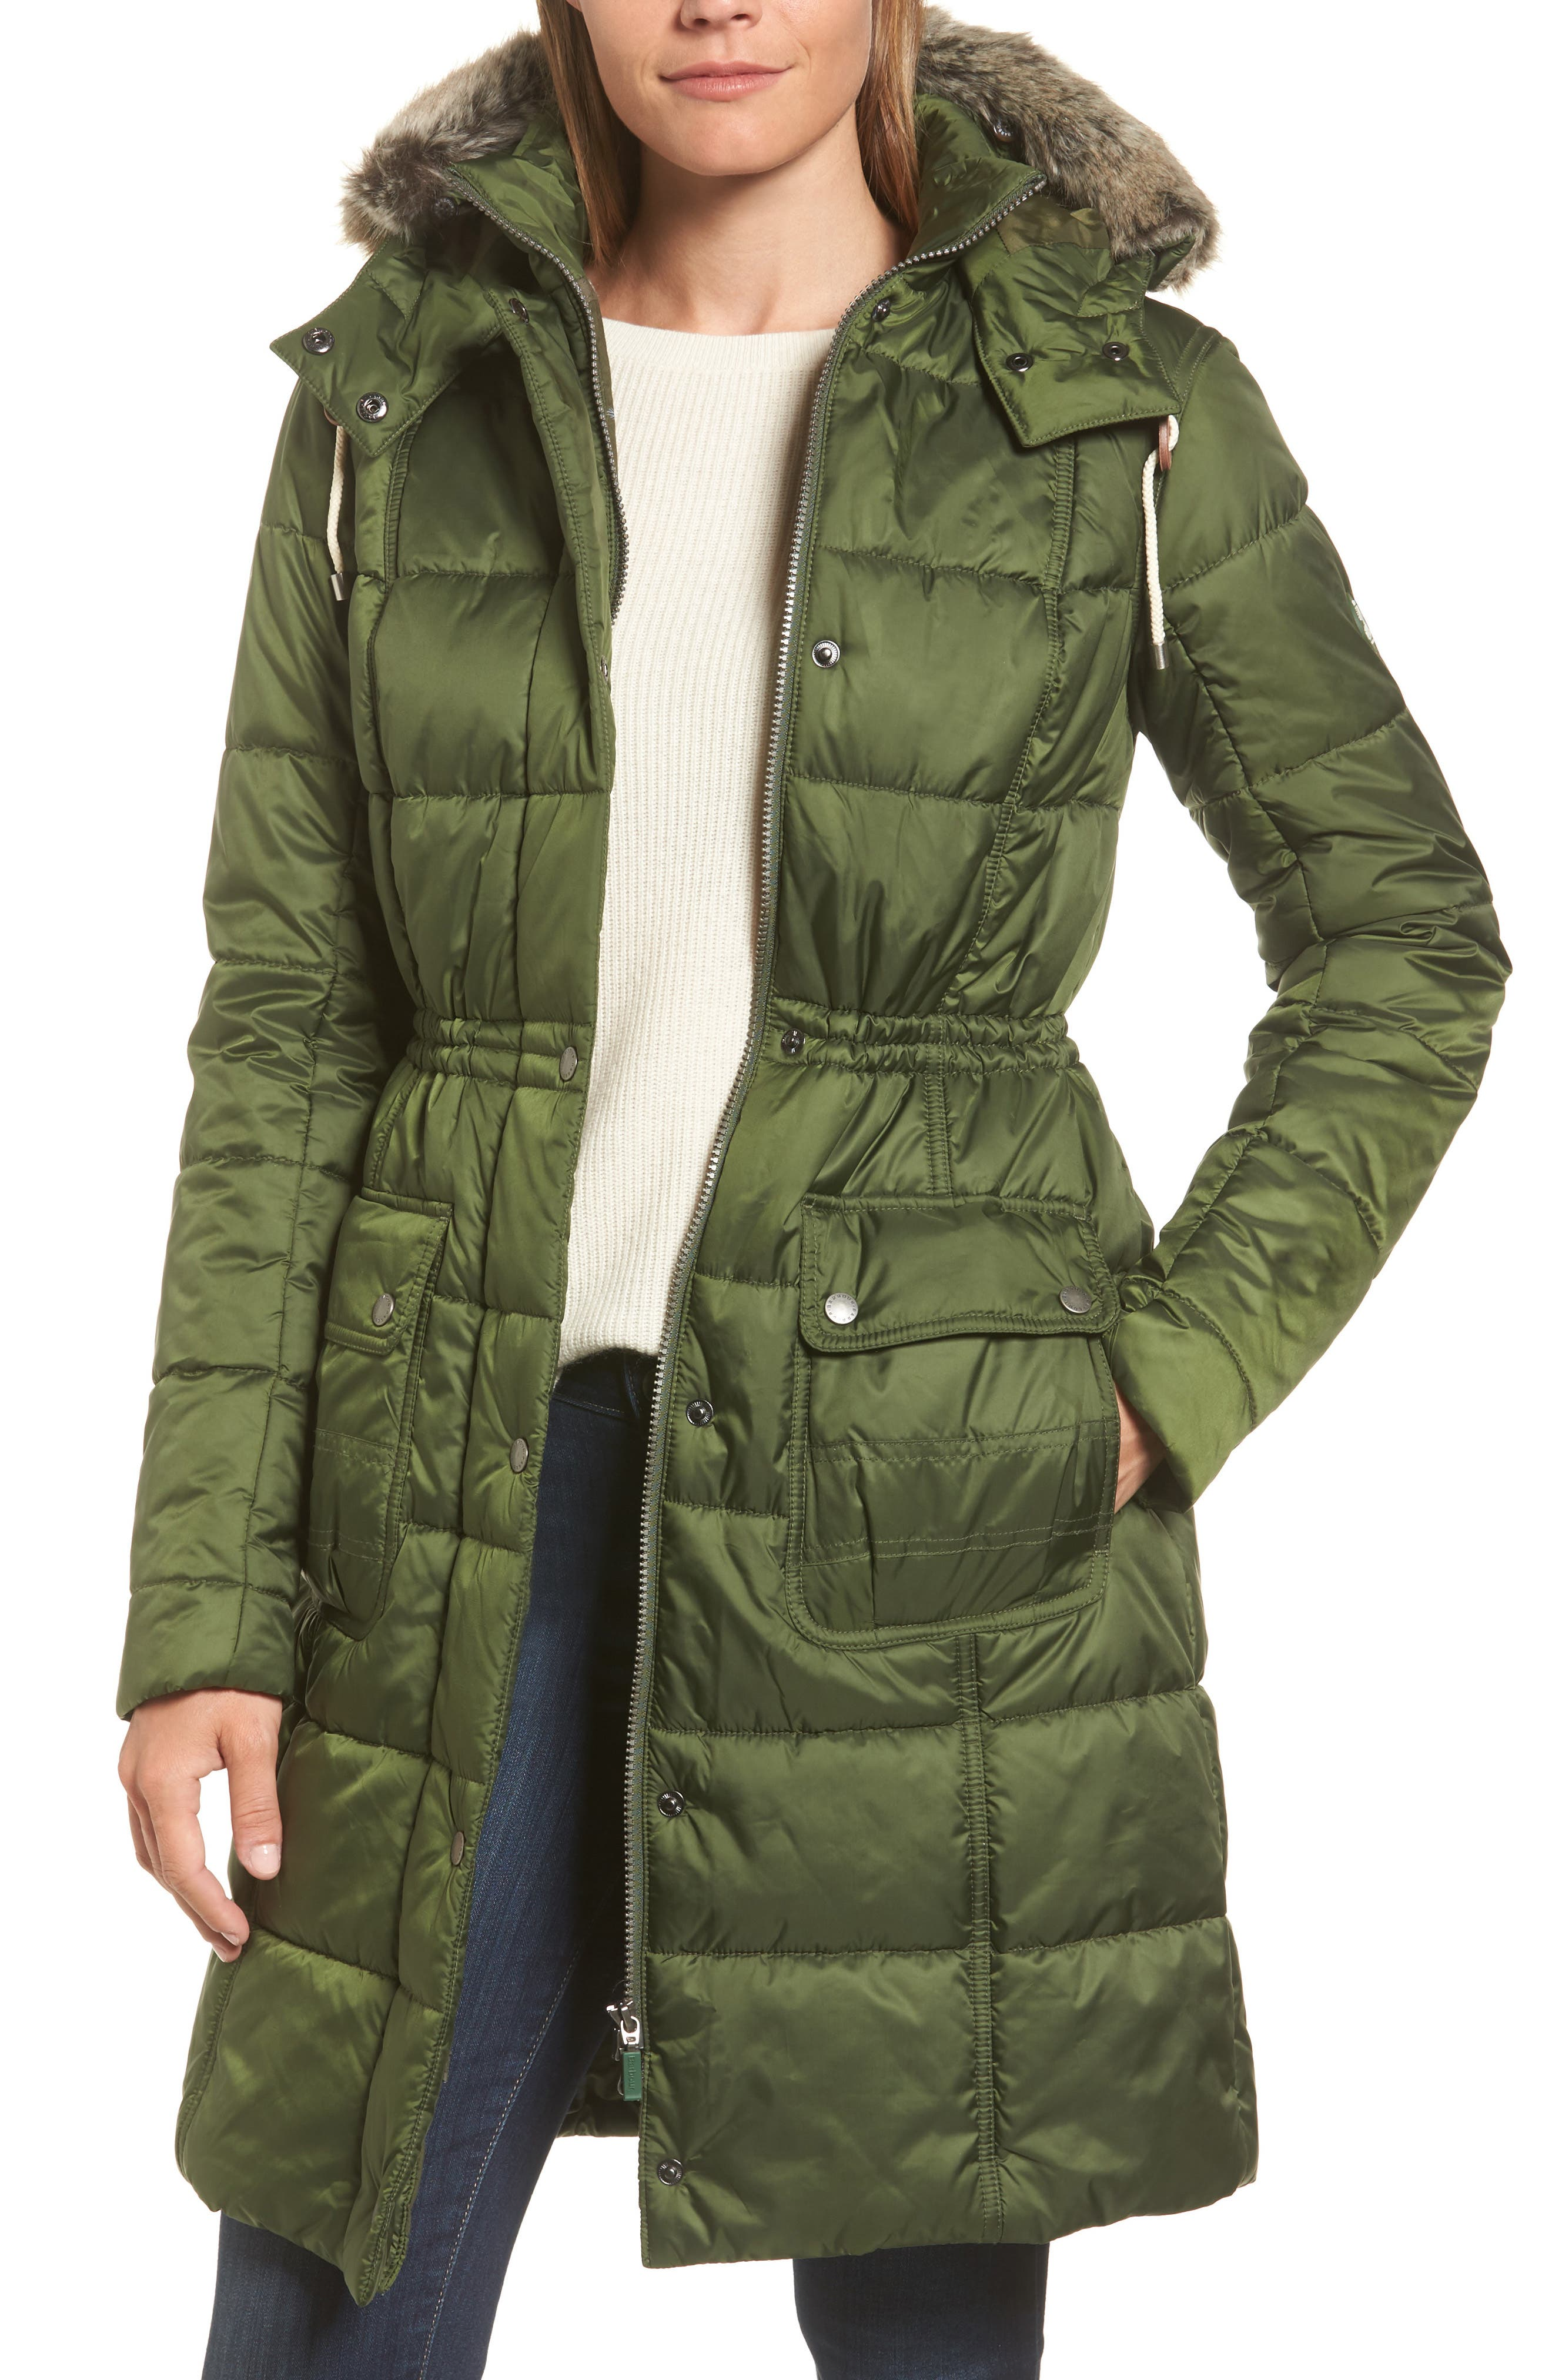 Main Image - Barbour Winterton Water Resistant Hooded Quilted Jacket with Faux Fur Trim